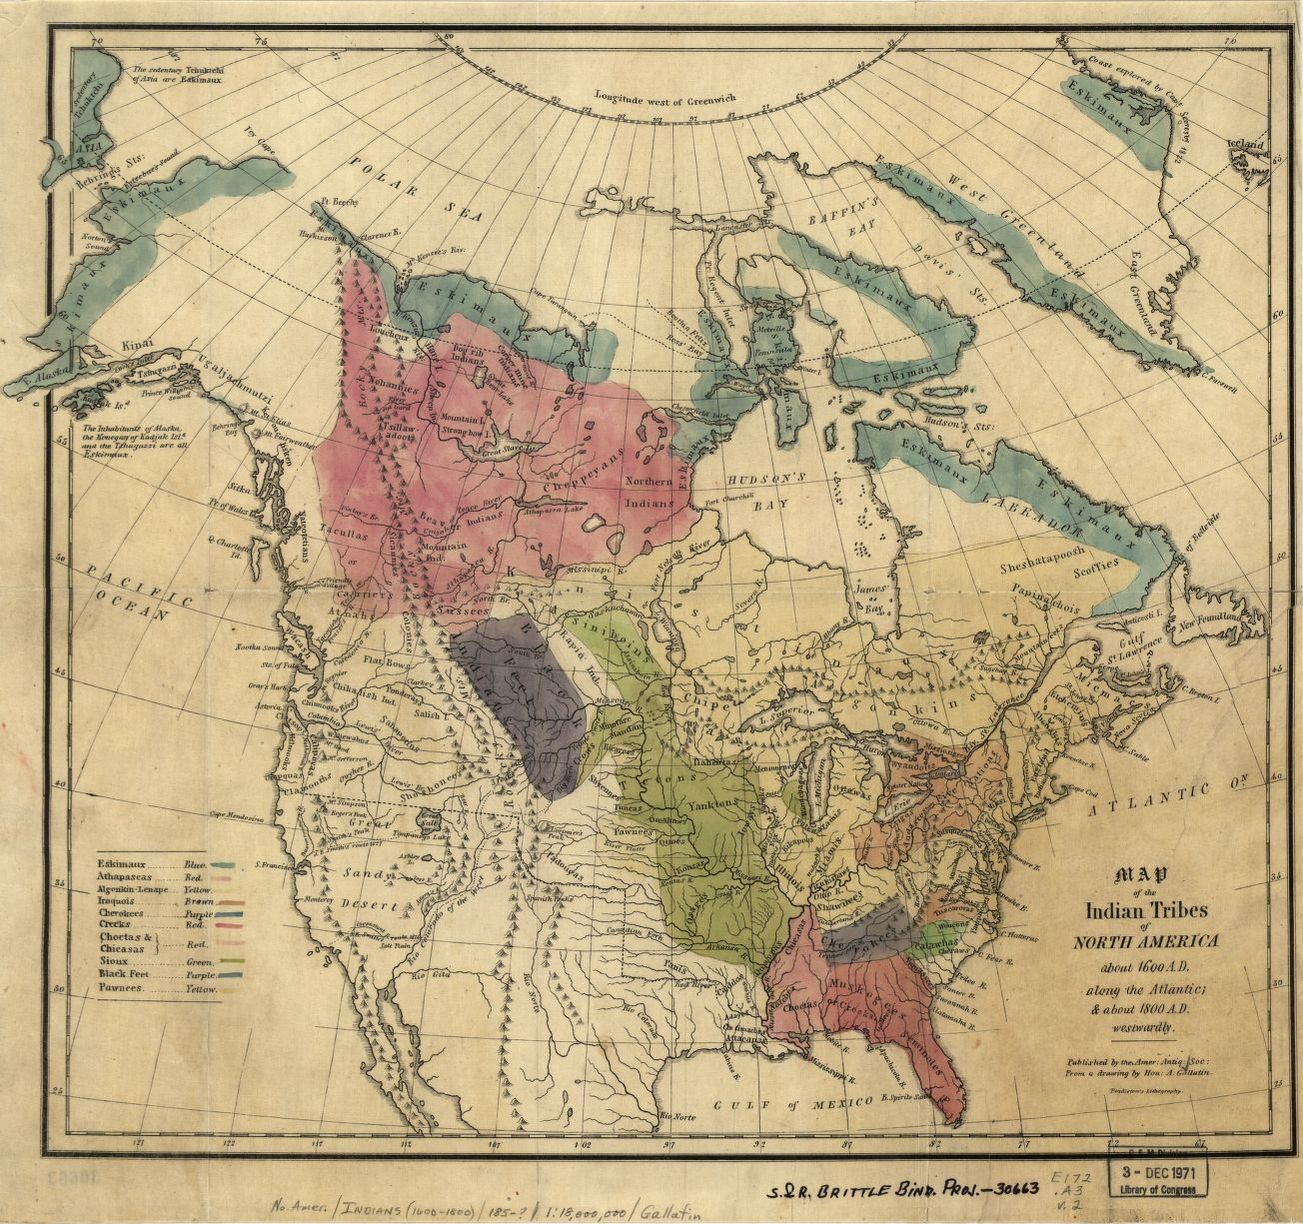 Map of the Indian Tribes of North America about 1600 A.D.